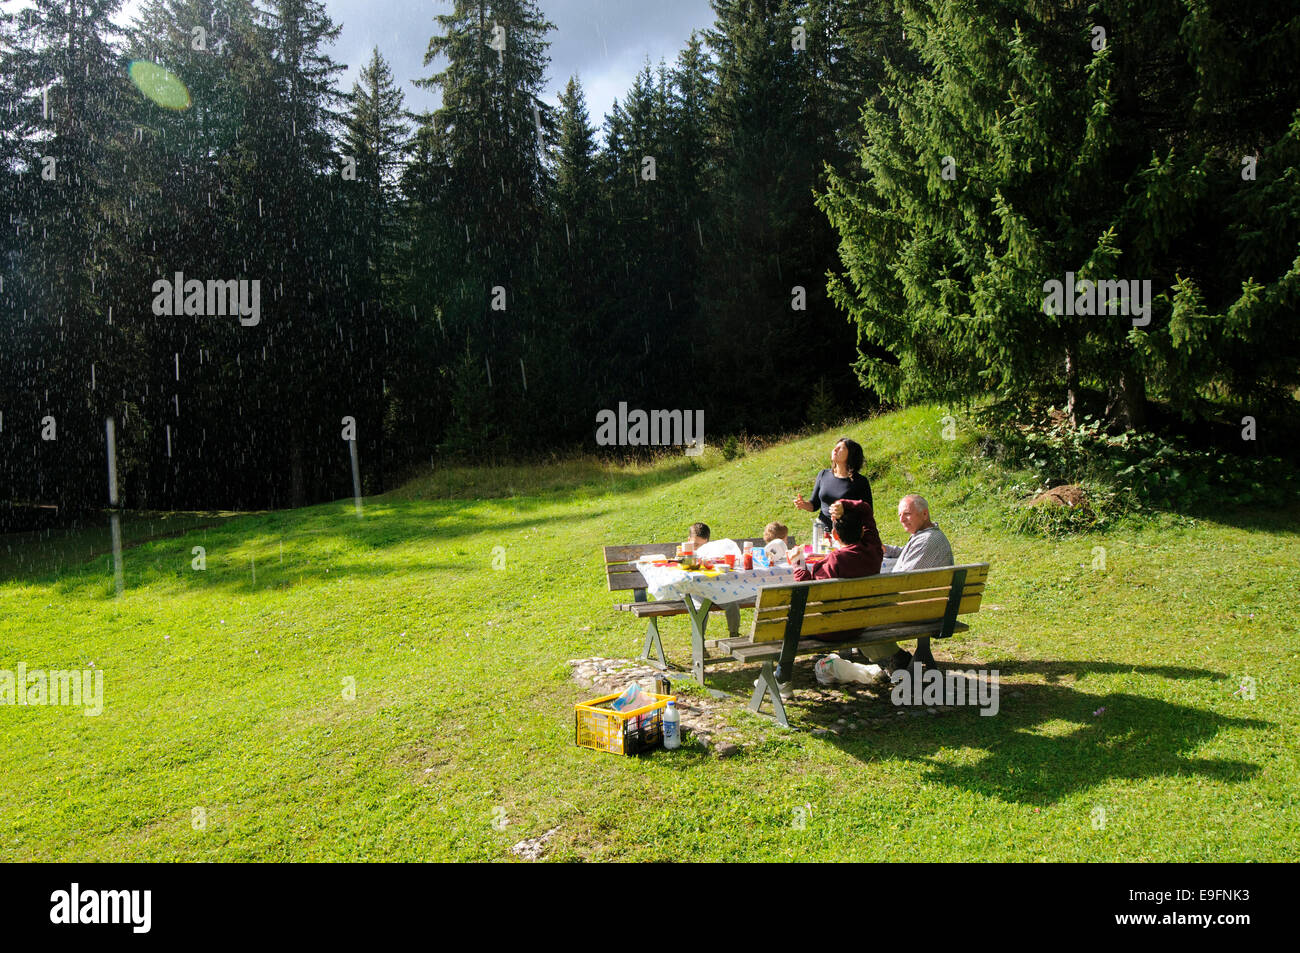 Raining on a Family picnic in a forest in the Dolomites, Italy - Stock Image